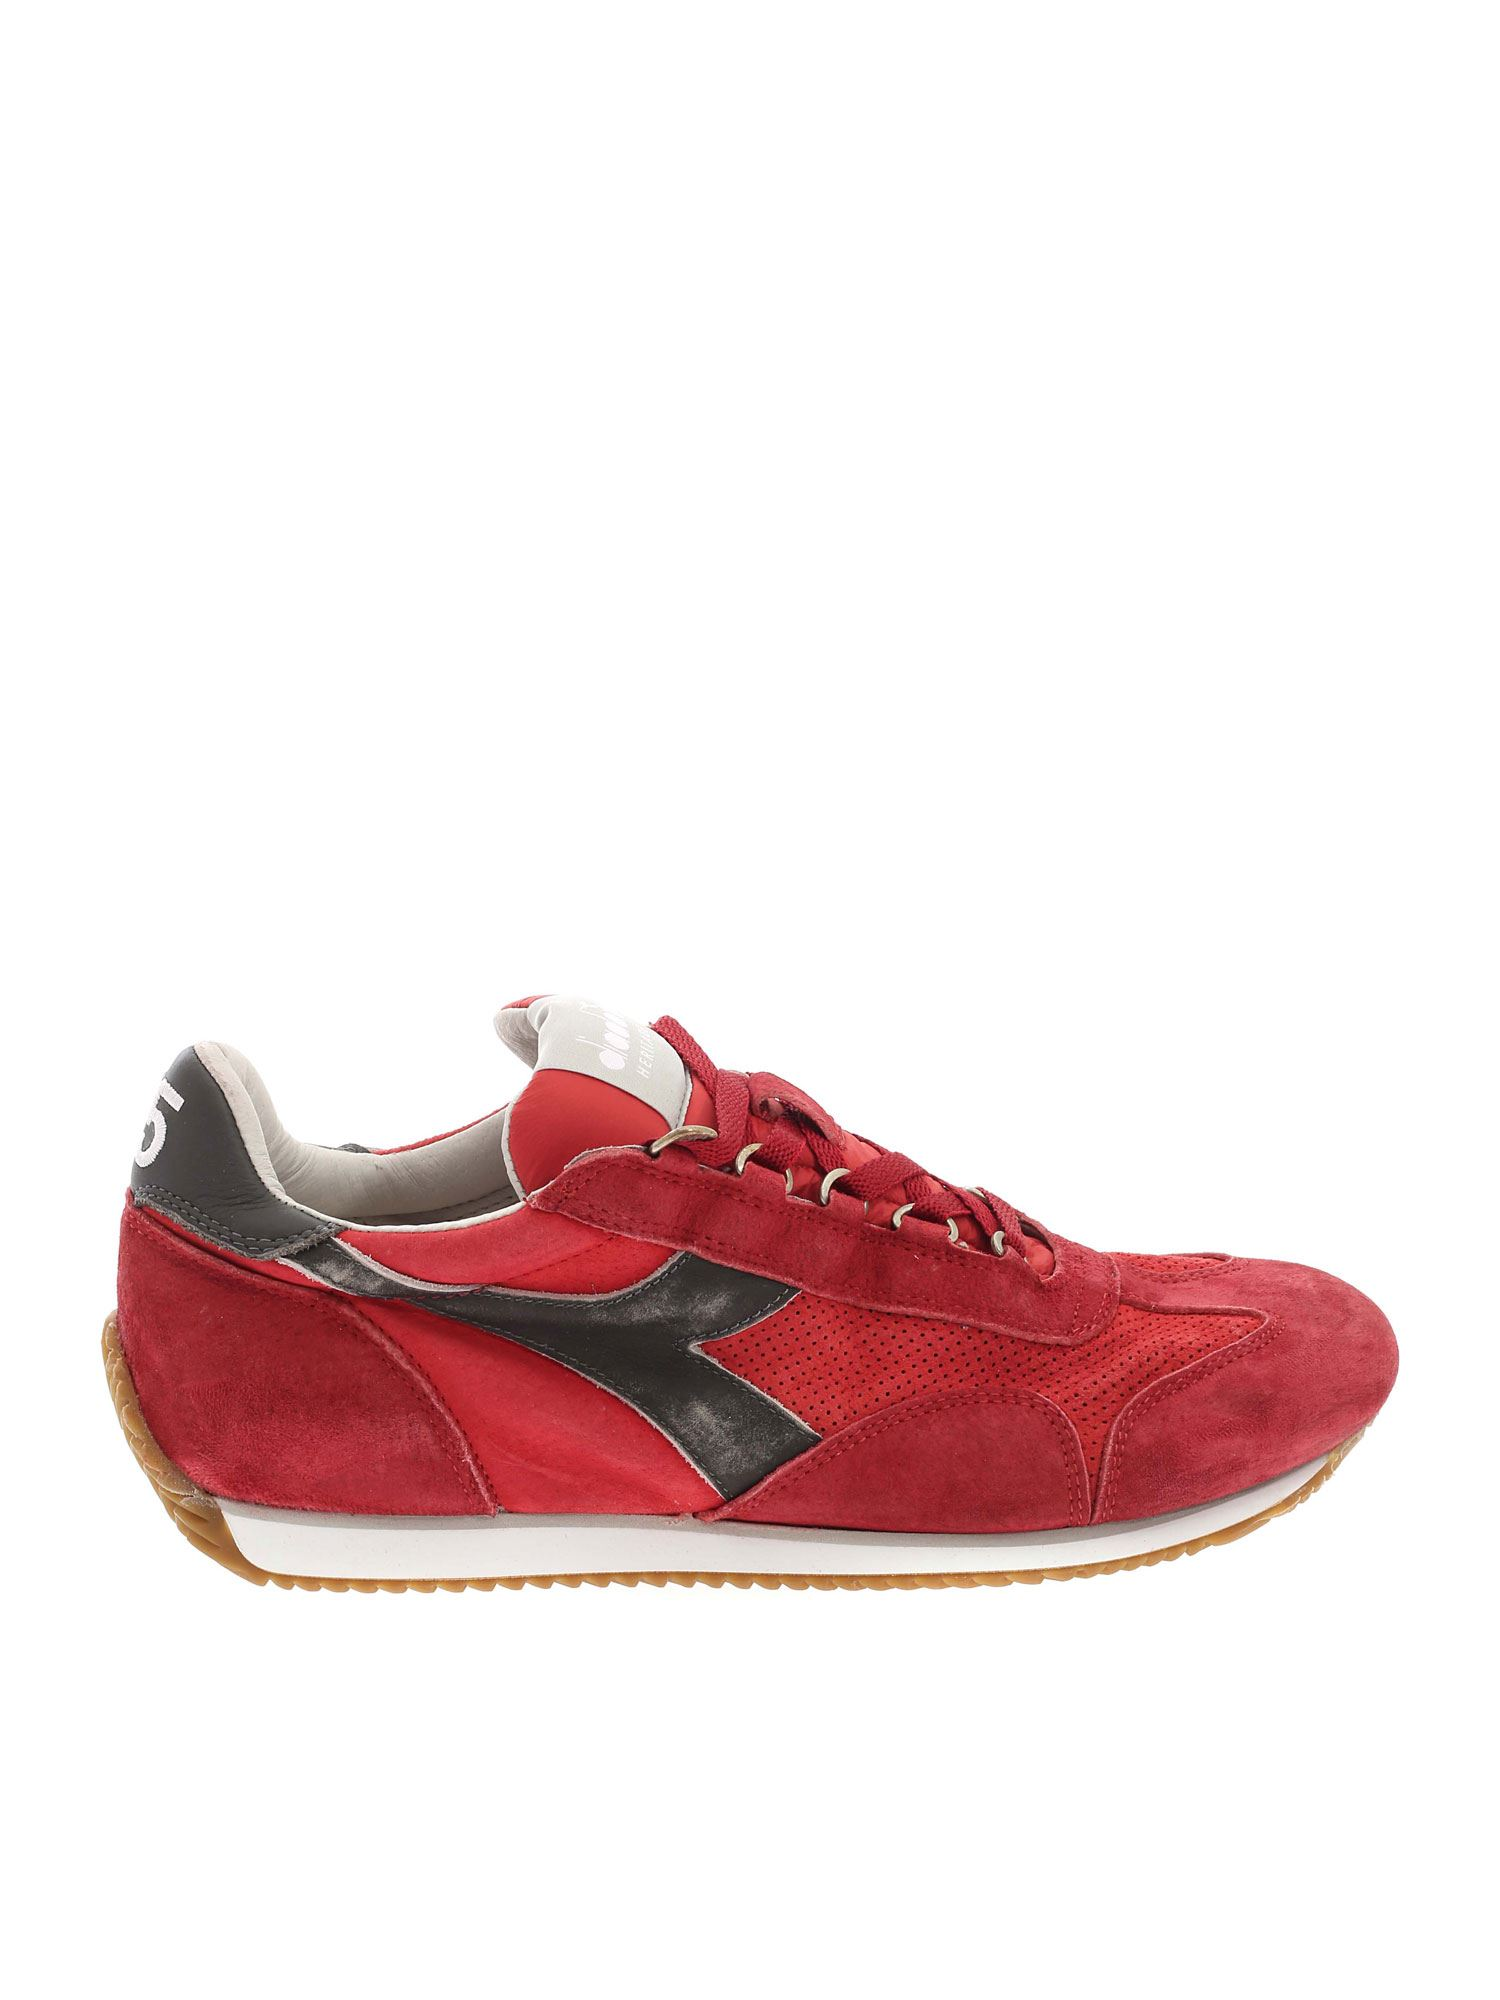 Diadora EQUIPE SUEDE SW SNEAKERS IN RED